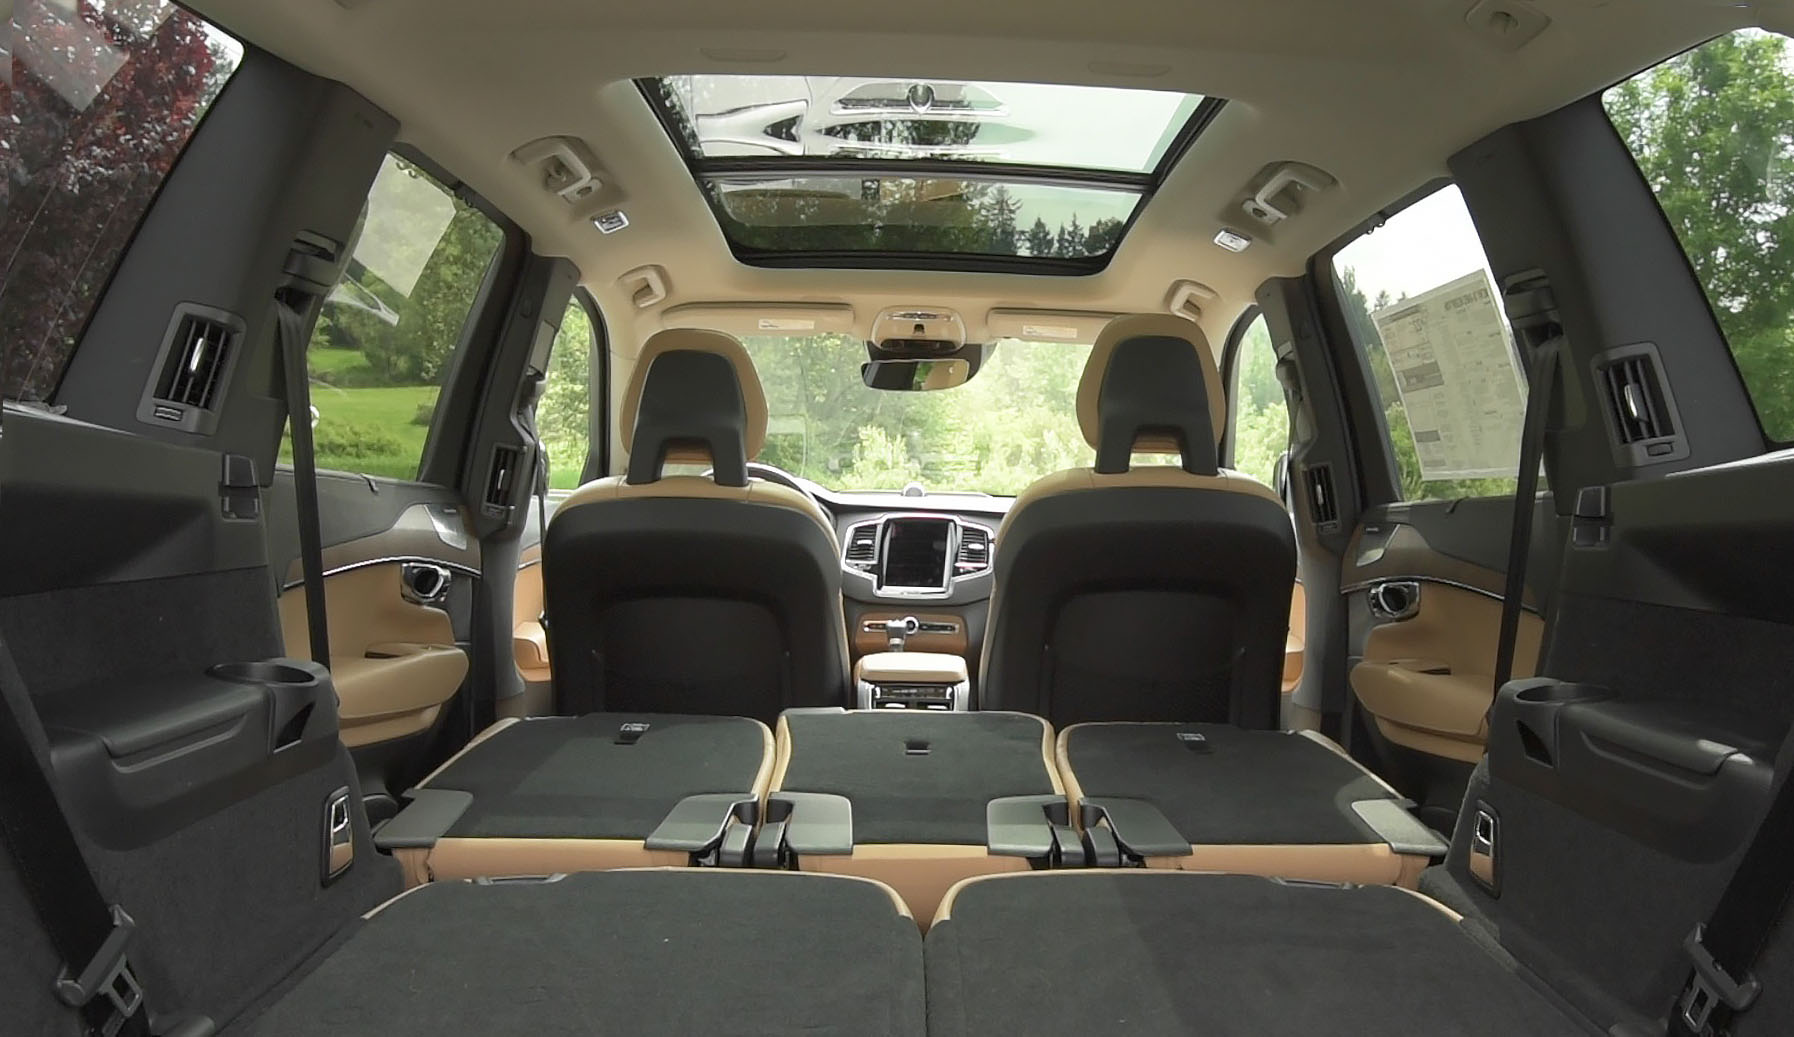 2016 Volvo Xc90 T8 Rear Interior (Photo 14 of 18)